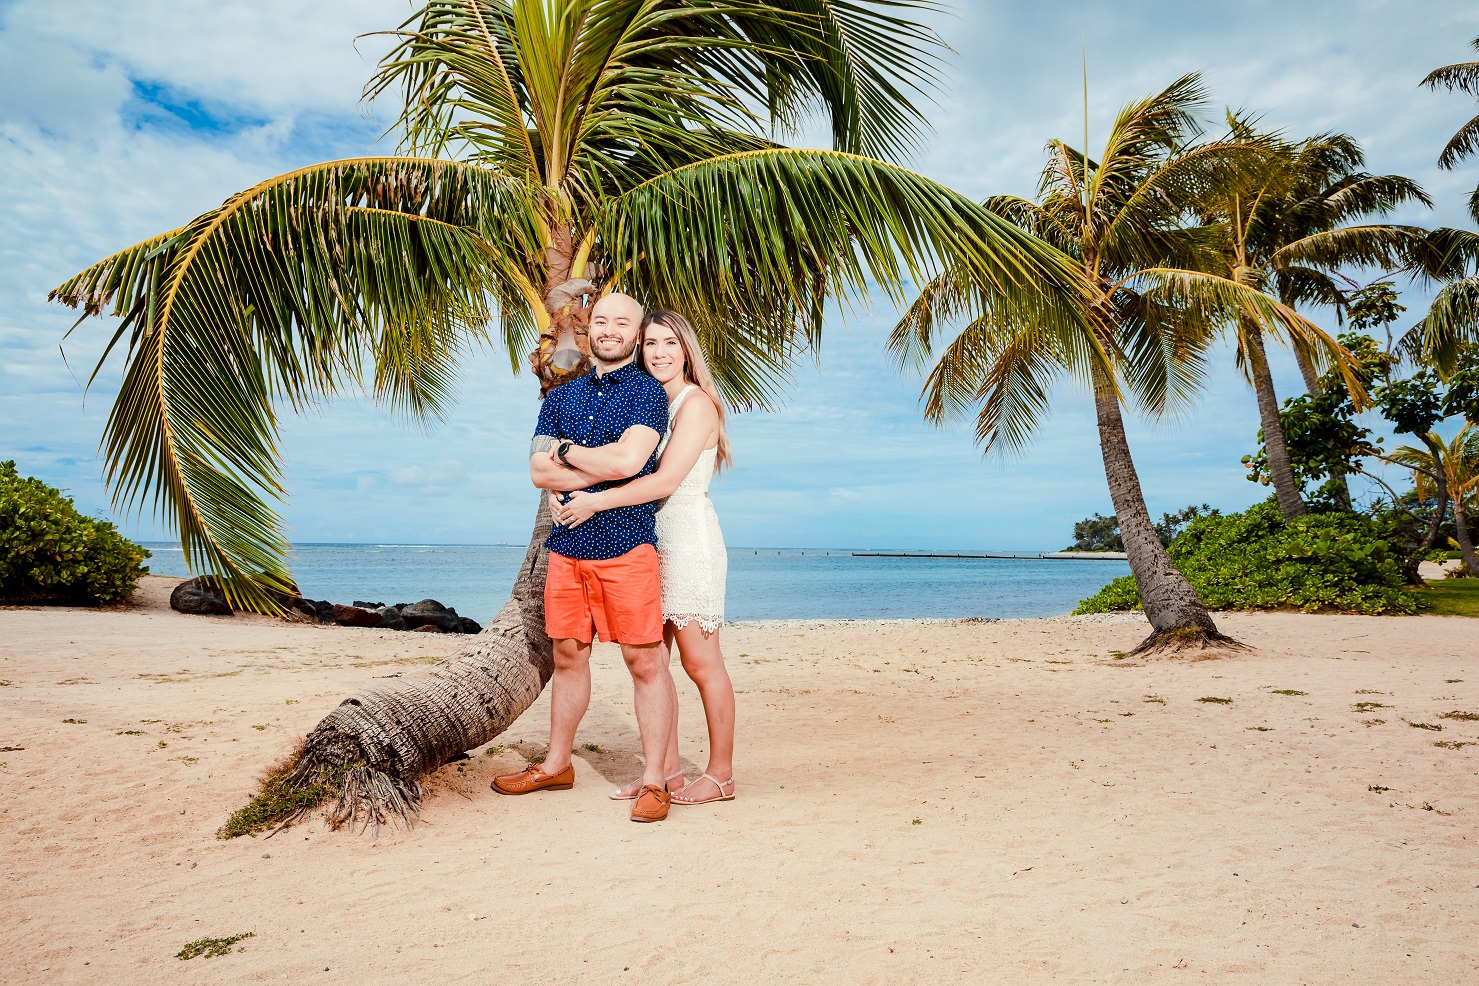 oahu beach palm tree couple love engagement photo